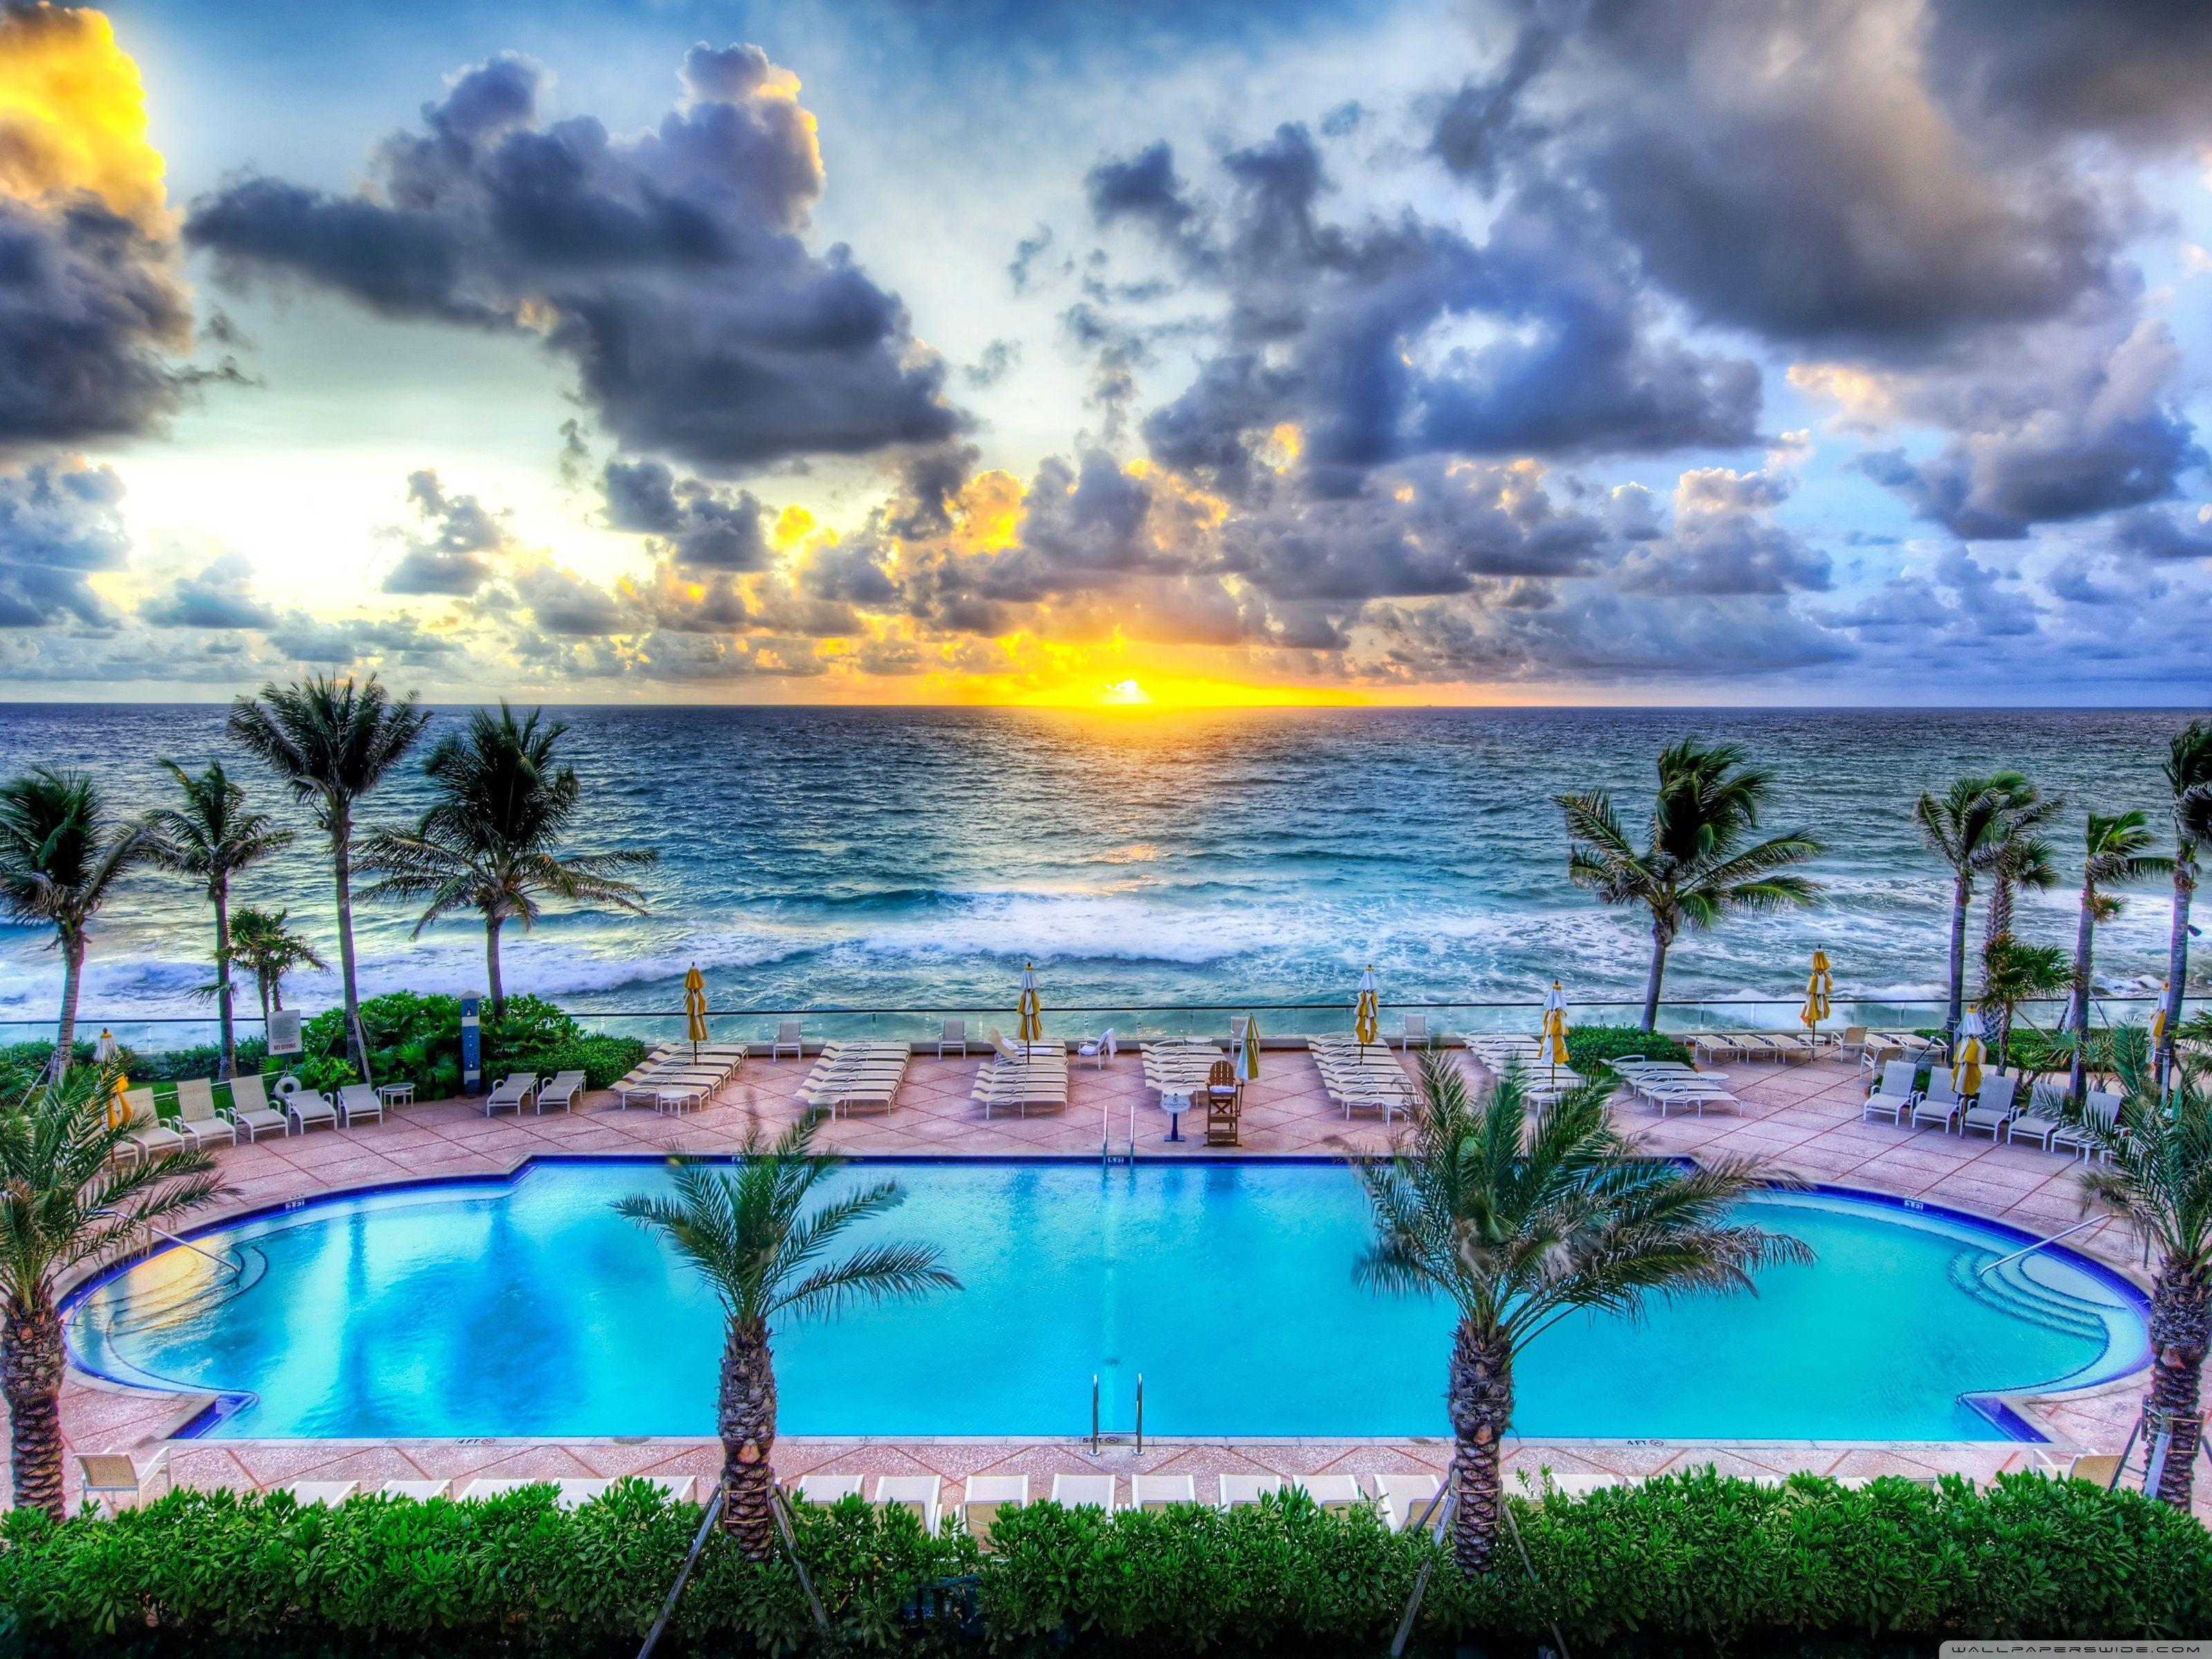 Pool Party, Florida HD desktop wallpapers : Widescreen : High